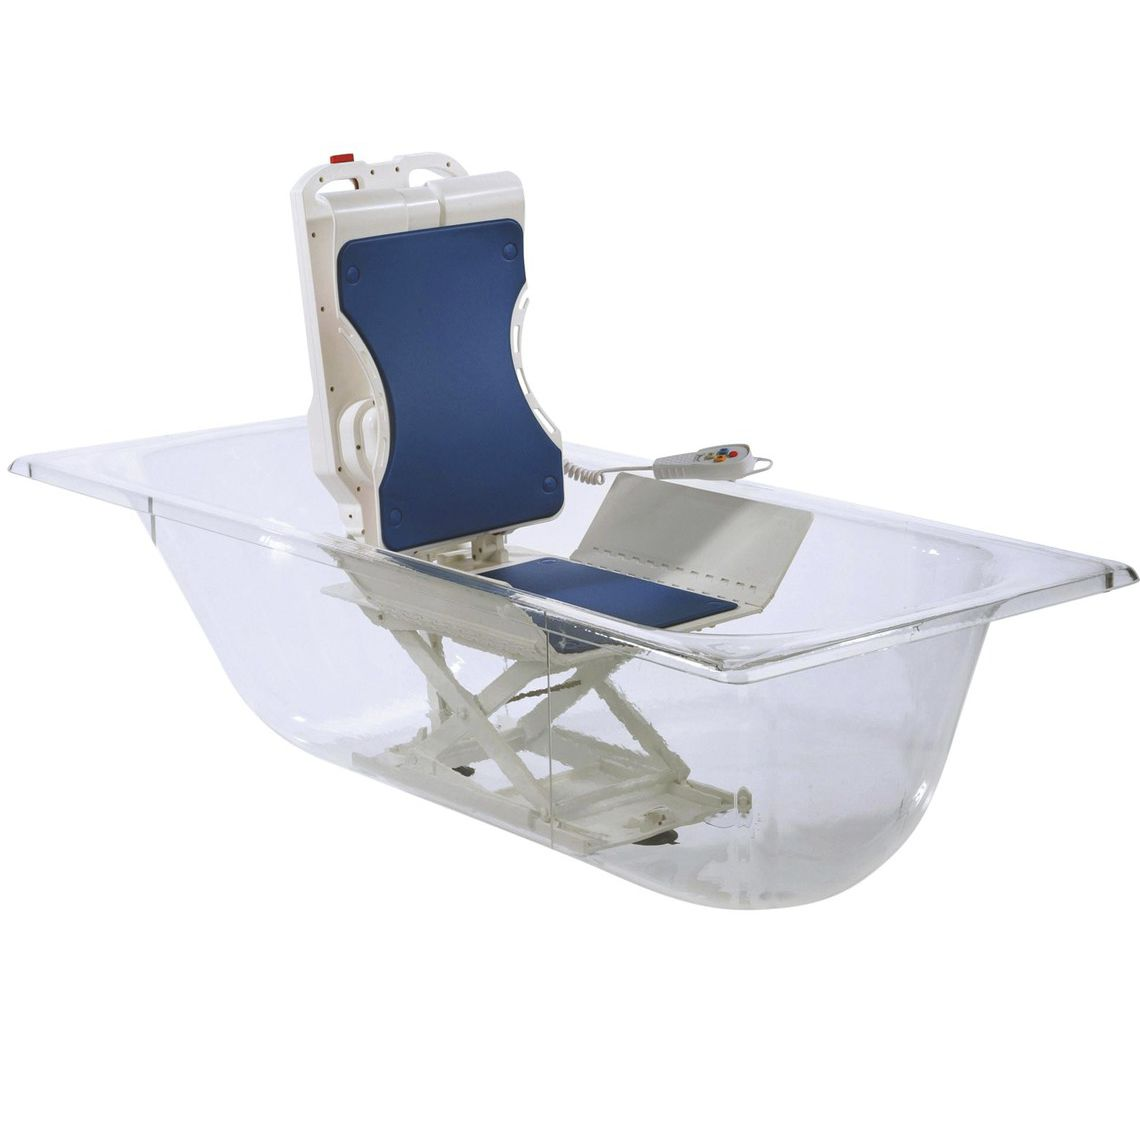 Bath seat / with suction cup - 430100312, 430200252, - Drive ...